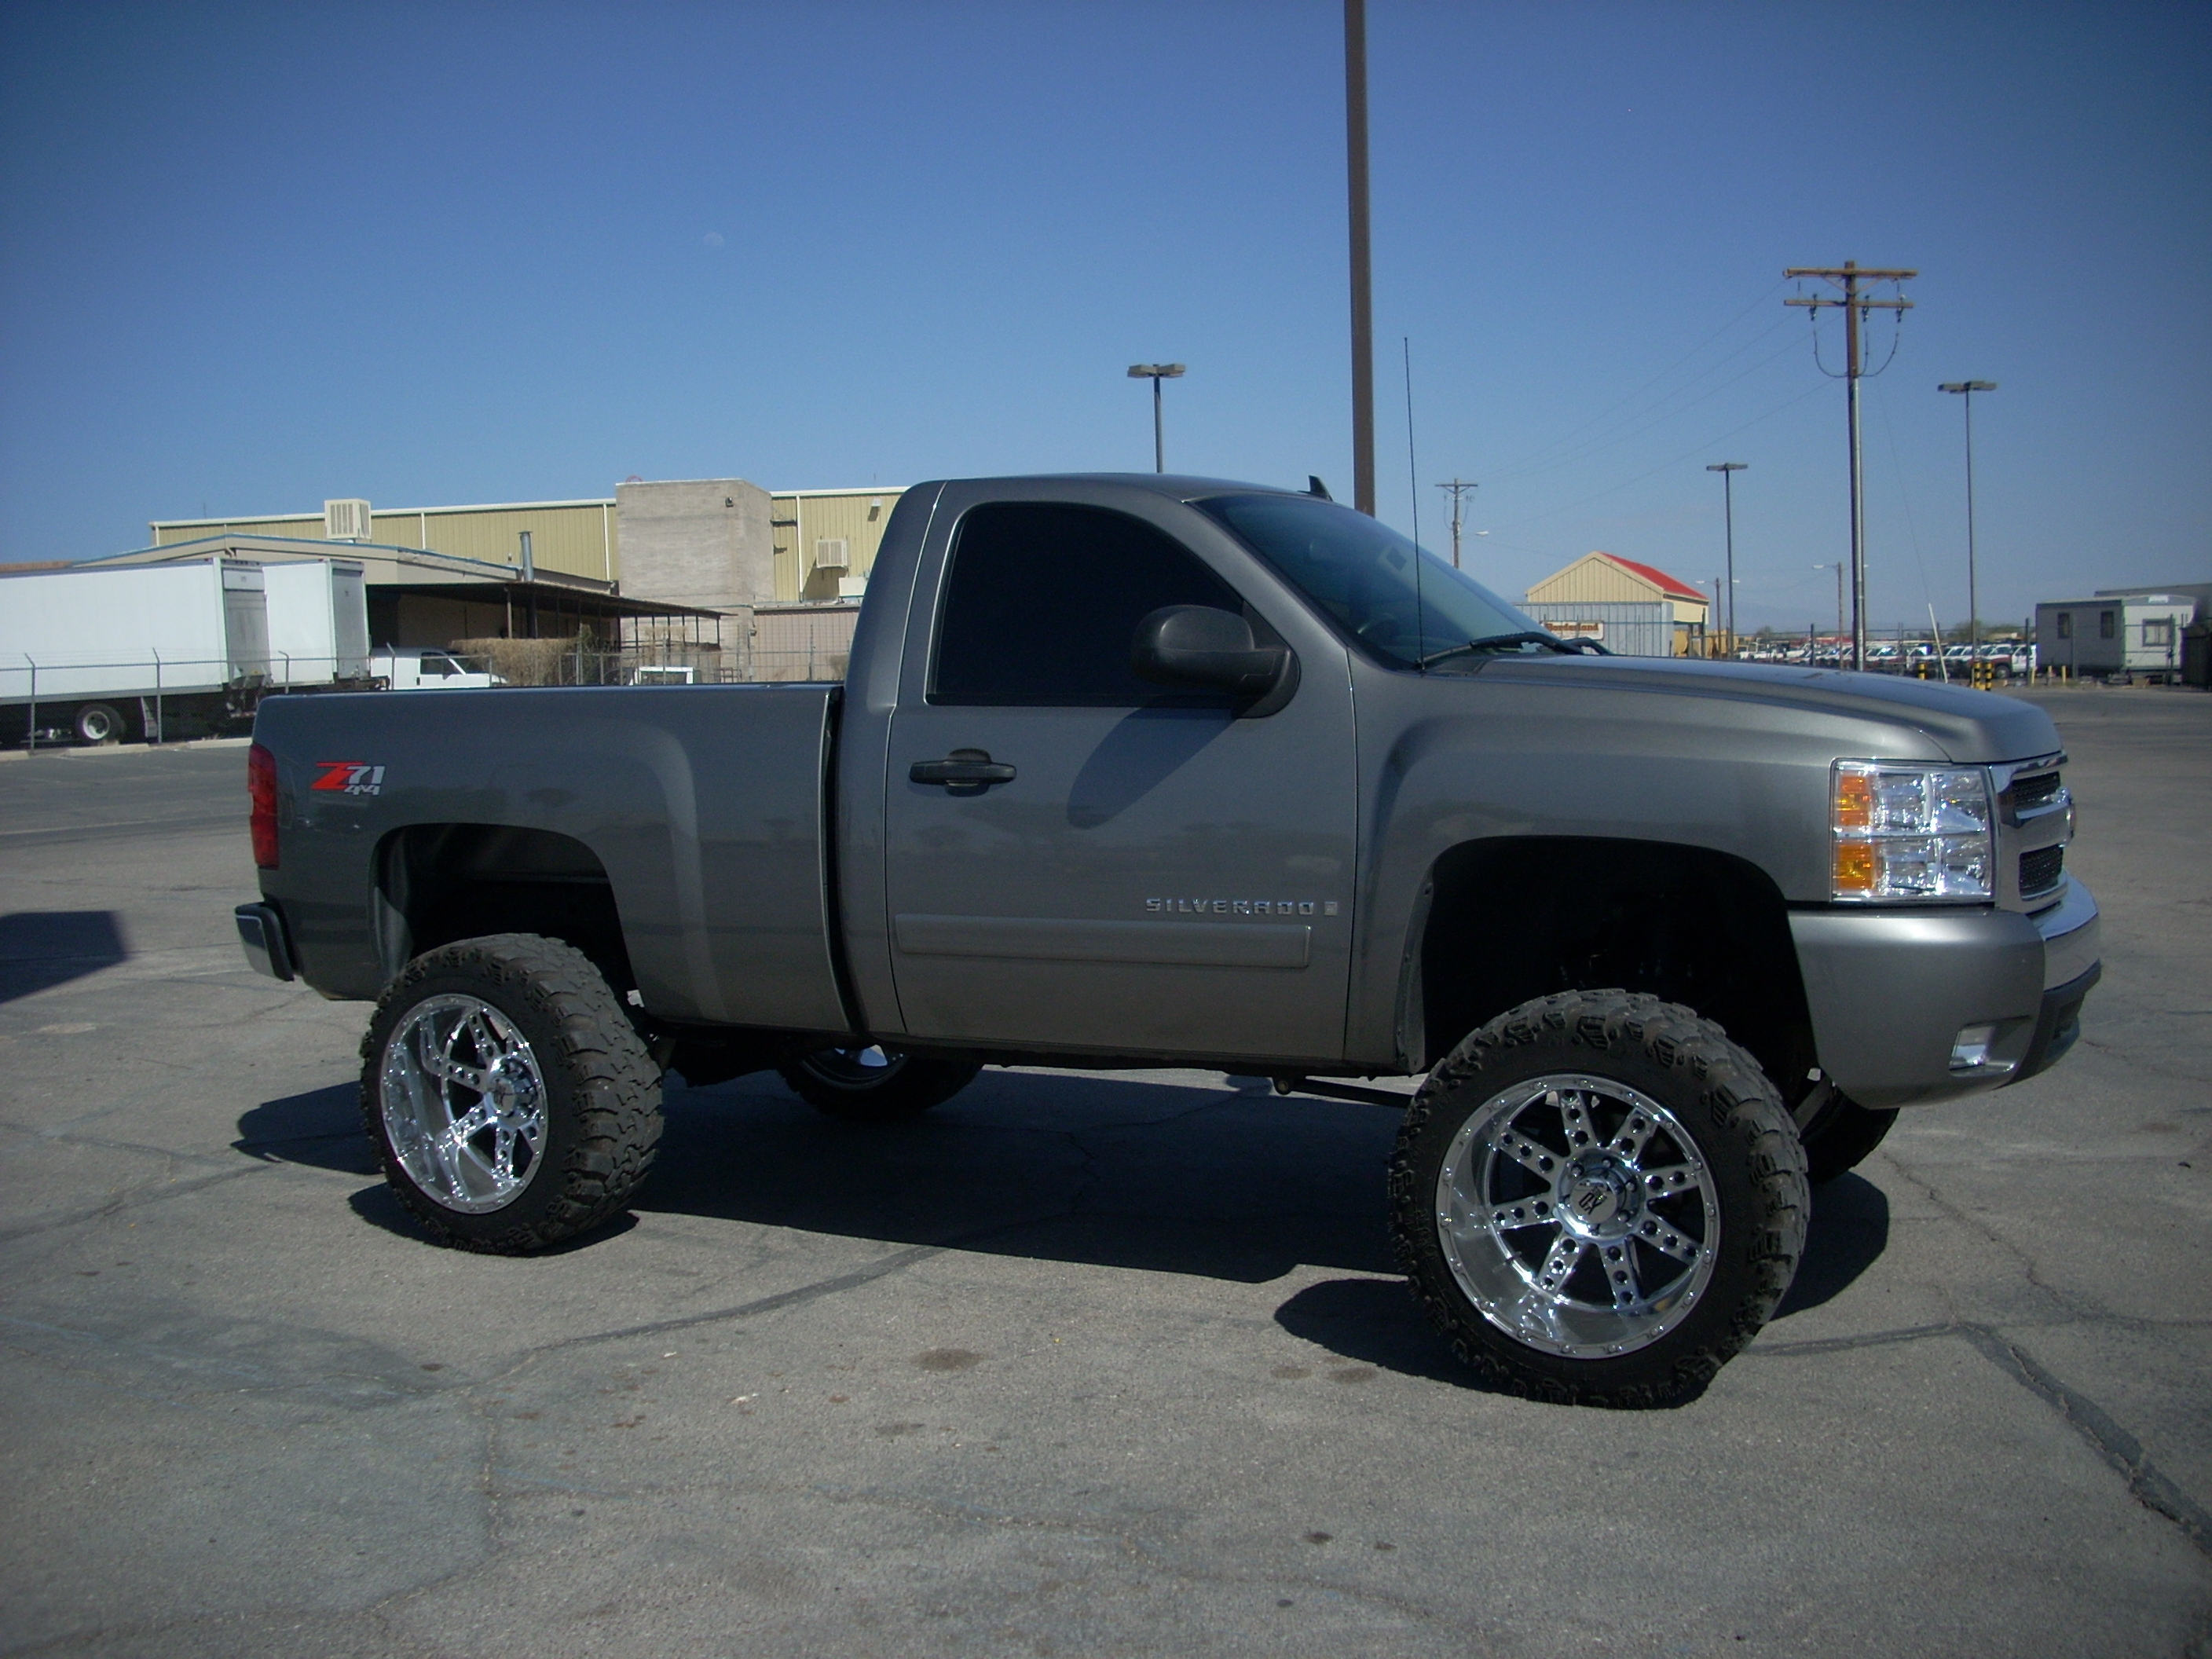 idcaf 2007 chevrolet silverado 1500 regular cab specs. Black Bedroom Furniture Sets. Home Design Ideas